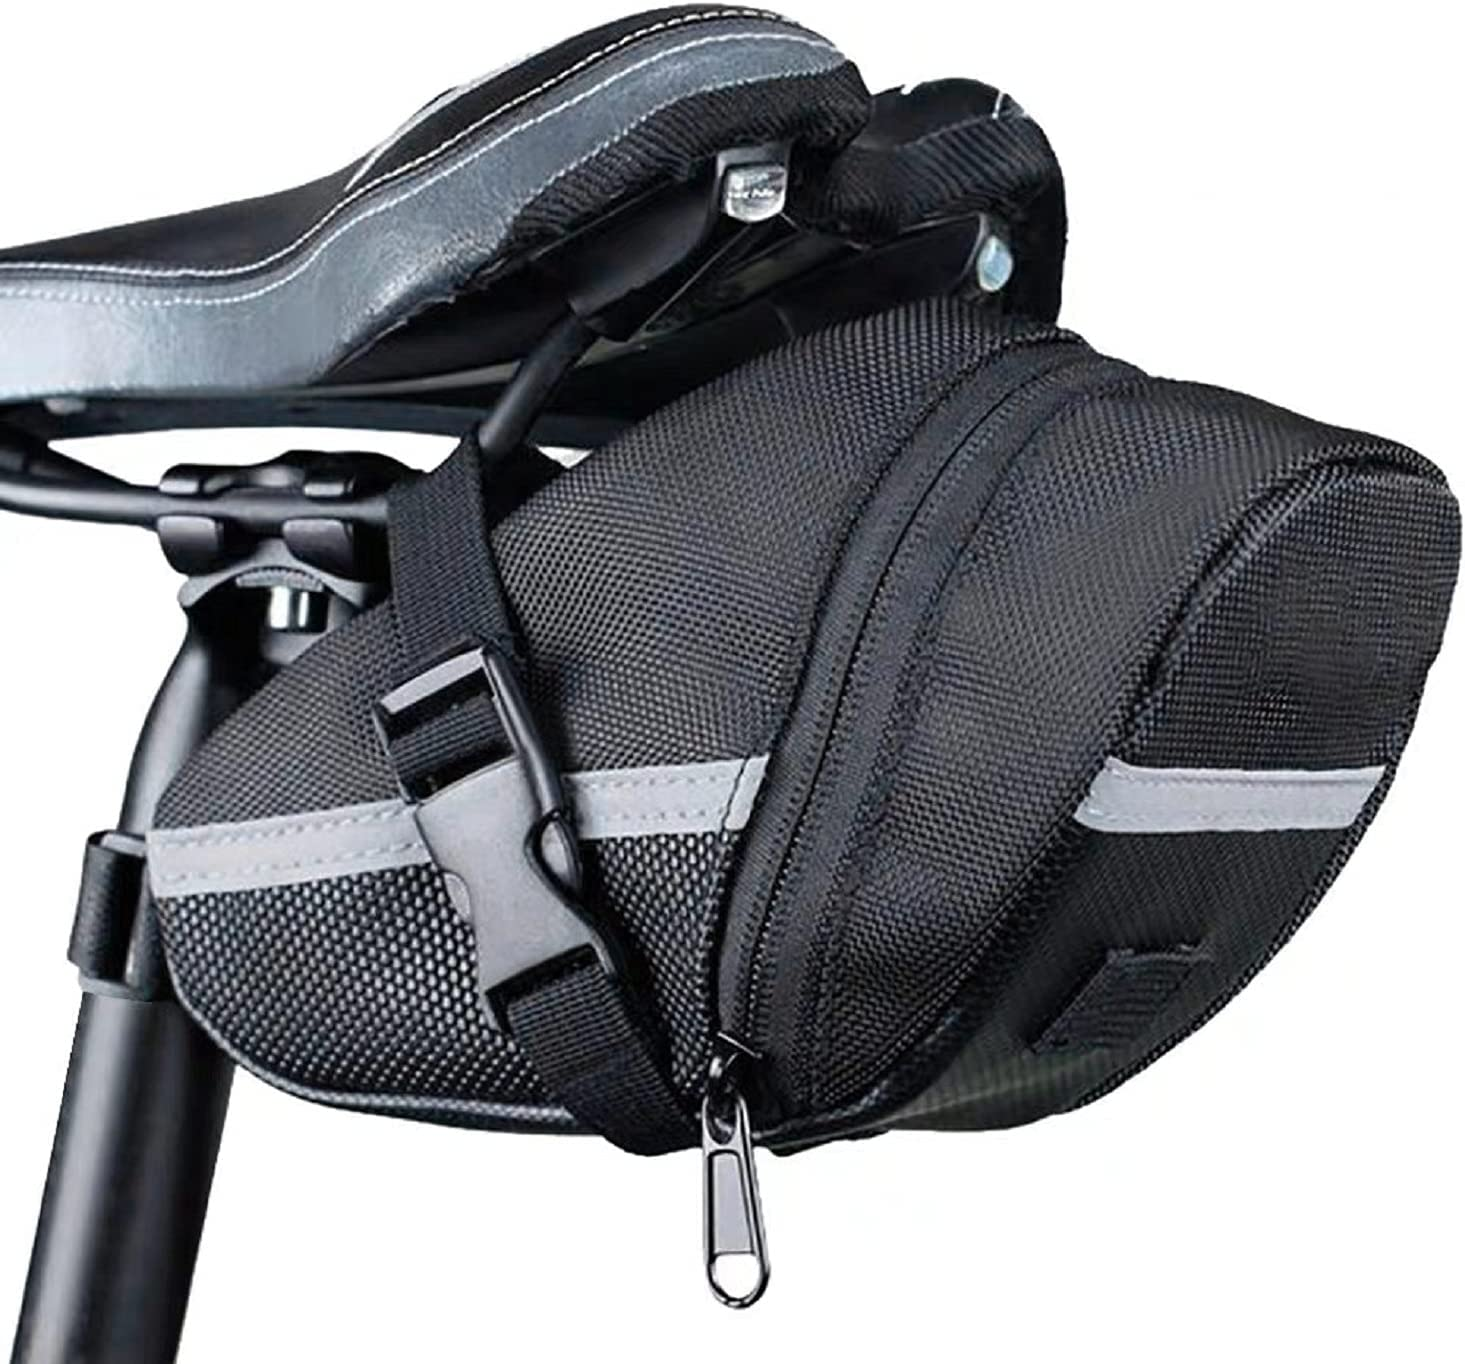 JW Direct store unisex TECH Bike Seat Bag Saddle Mountain Under R for